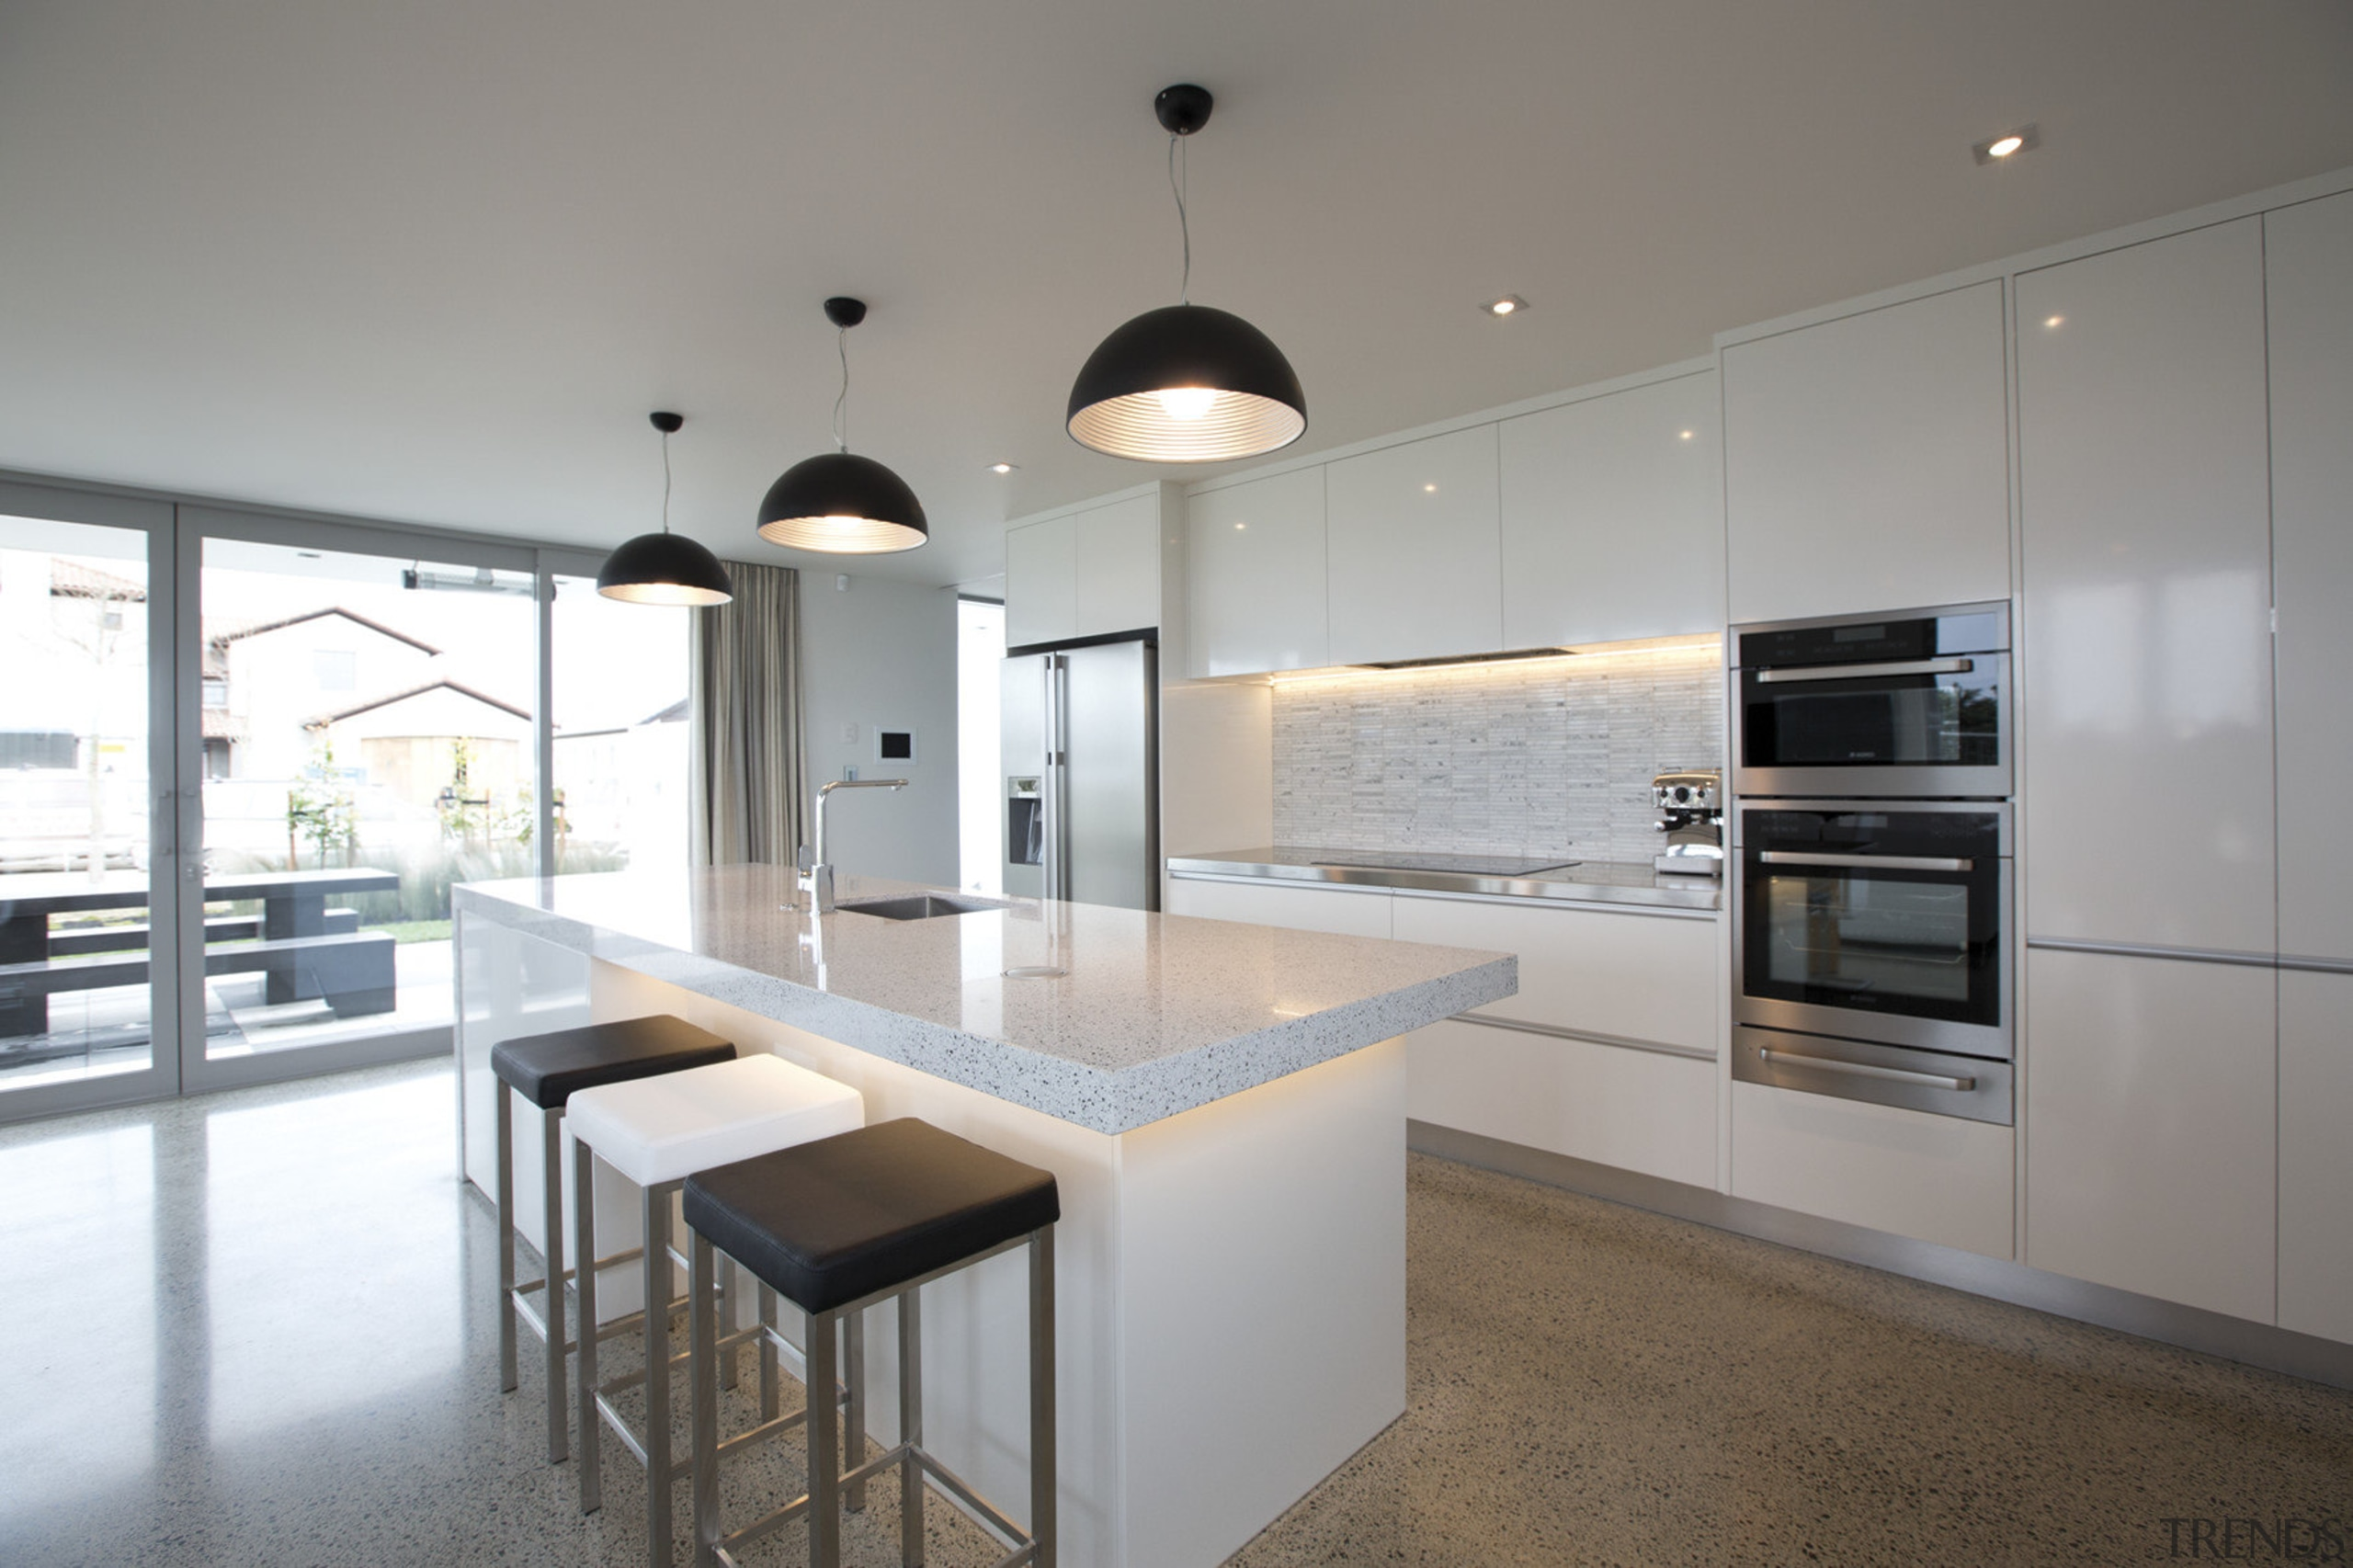 The Life at Home street of show homes architecture, countertop, cuisine classique, interior design, kitchen, real estate, gray